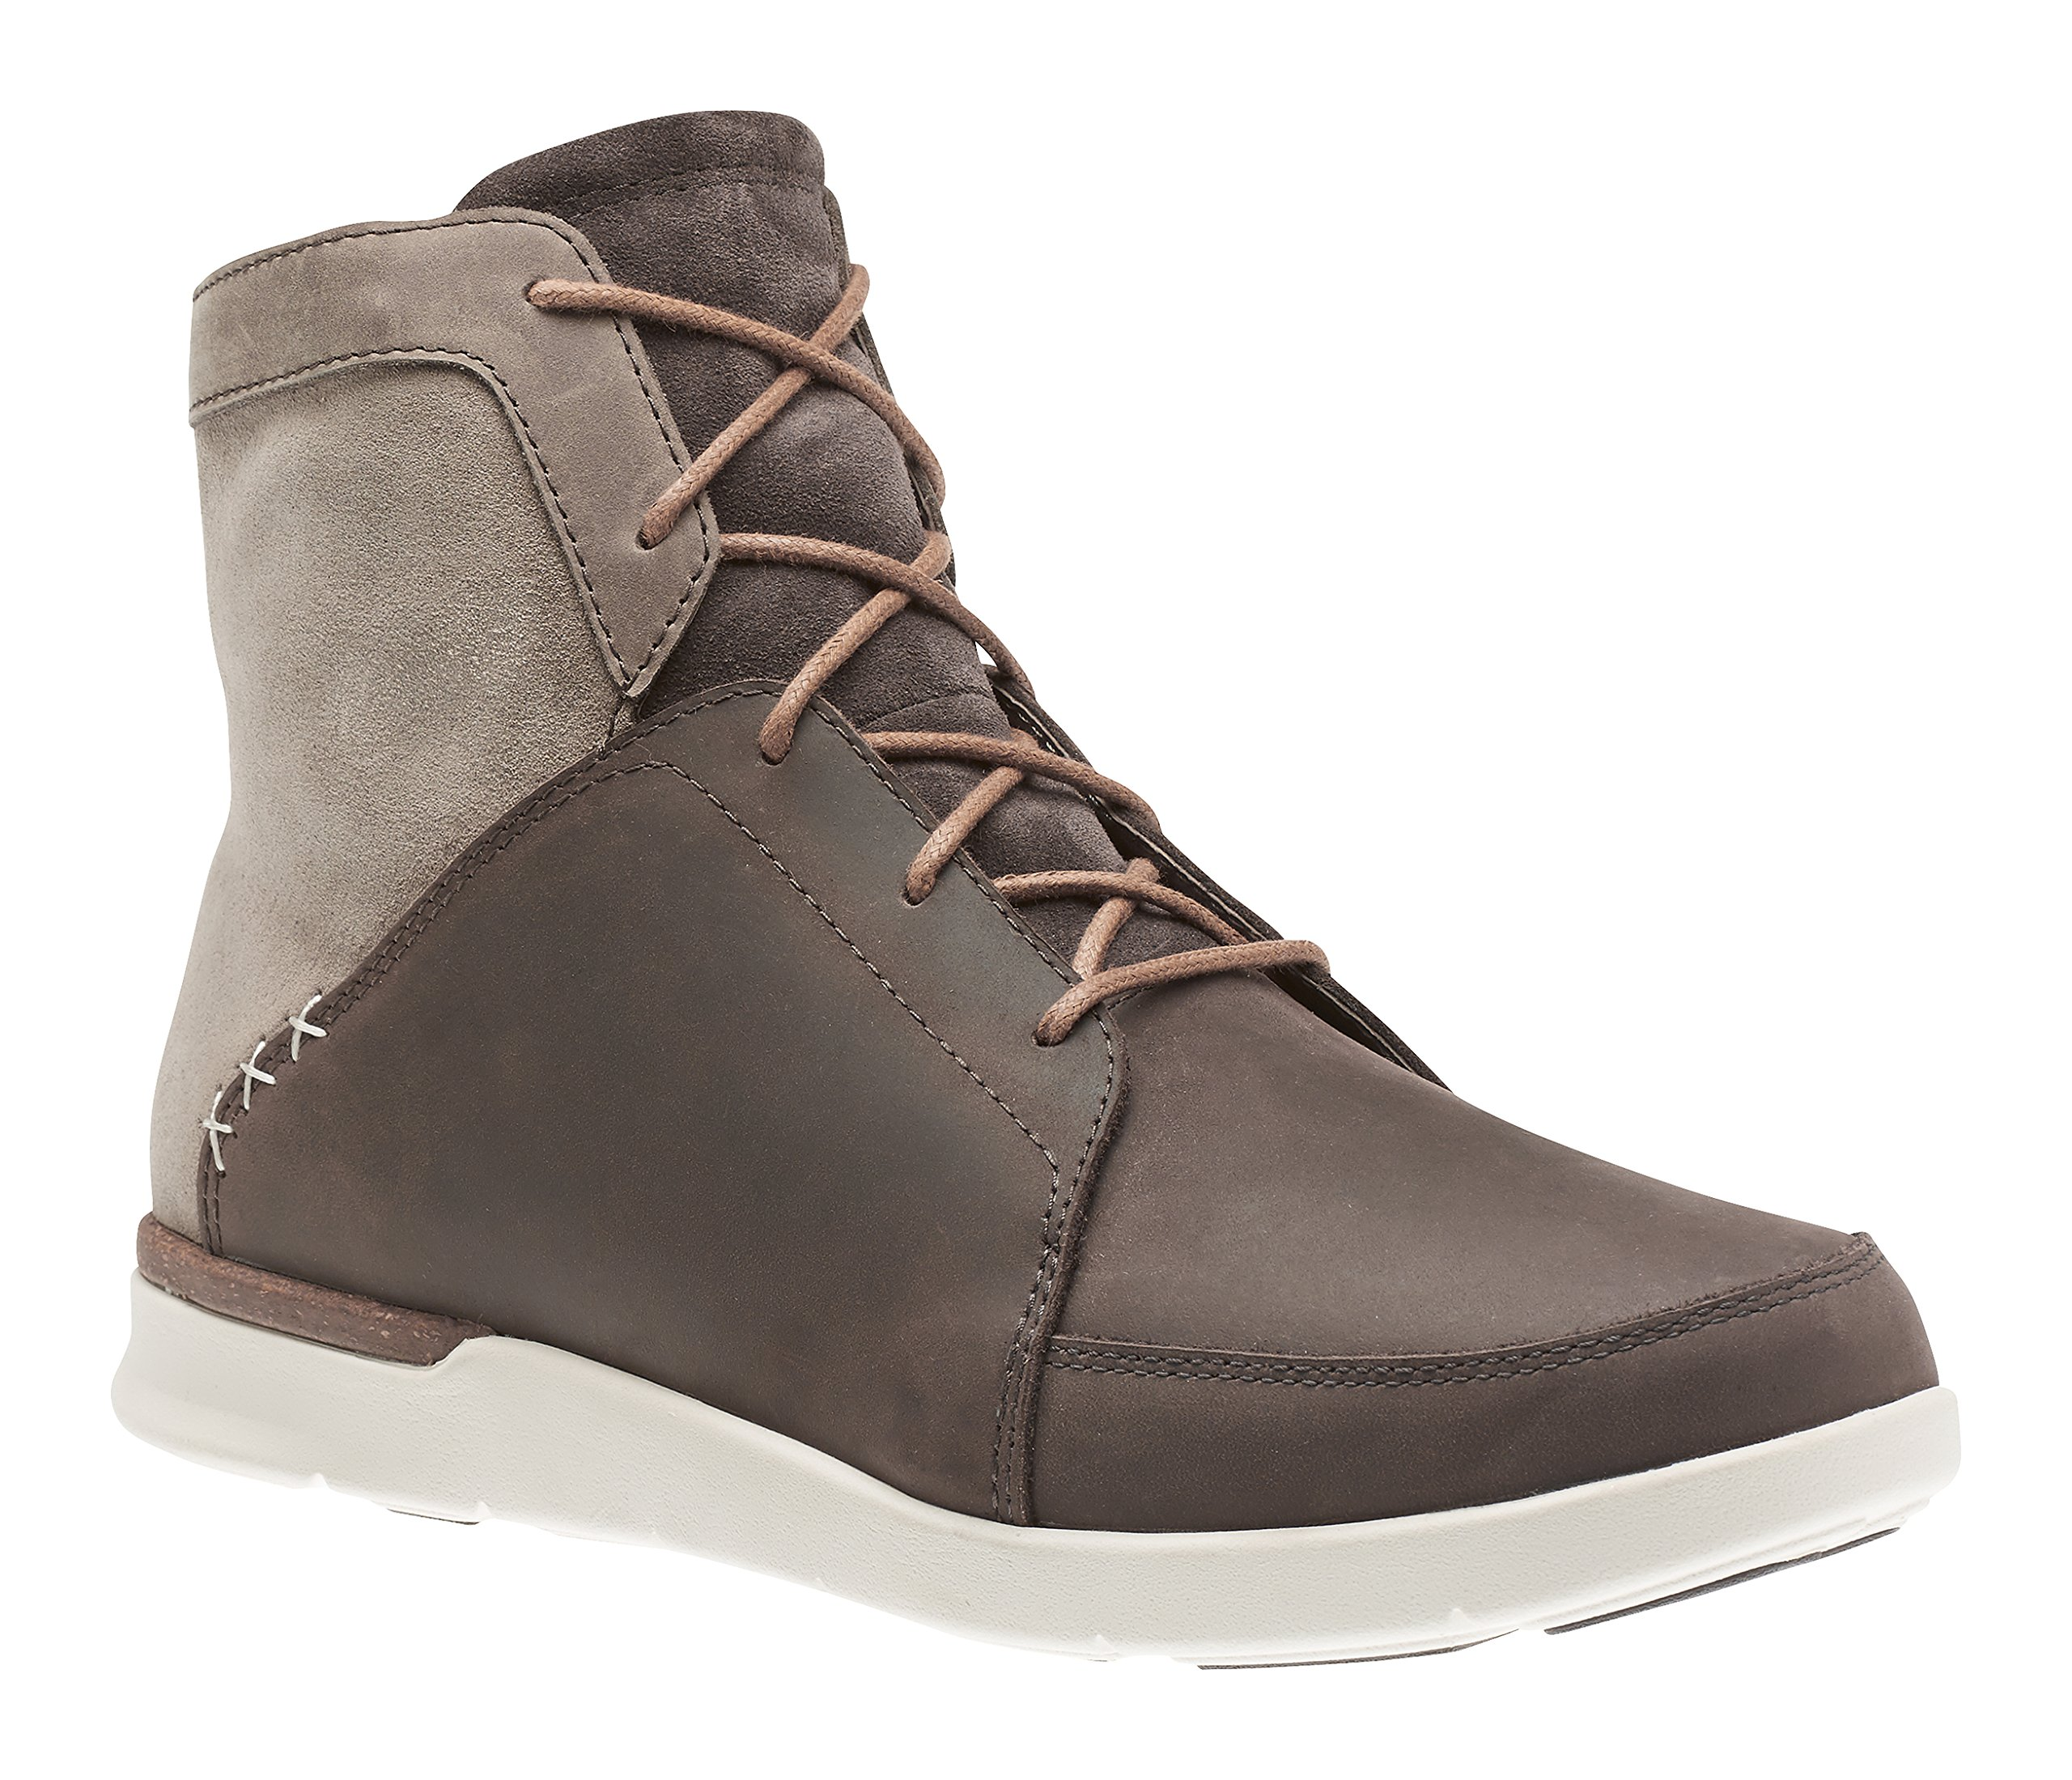 Superfeet Aspen Men's Comfort Casual Boot, Chocolate Brown/Turtledove, Full Grain Leather/Oiled Suede, Men's 9.5 US